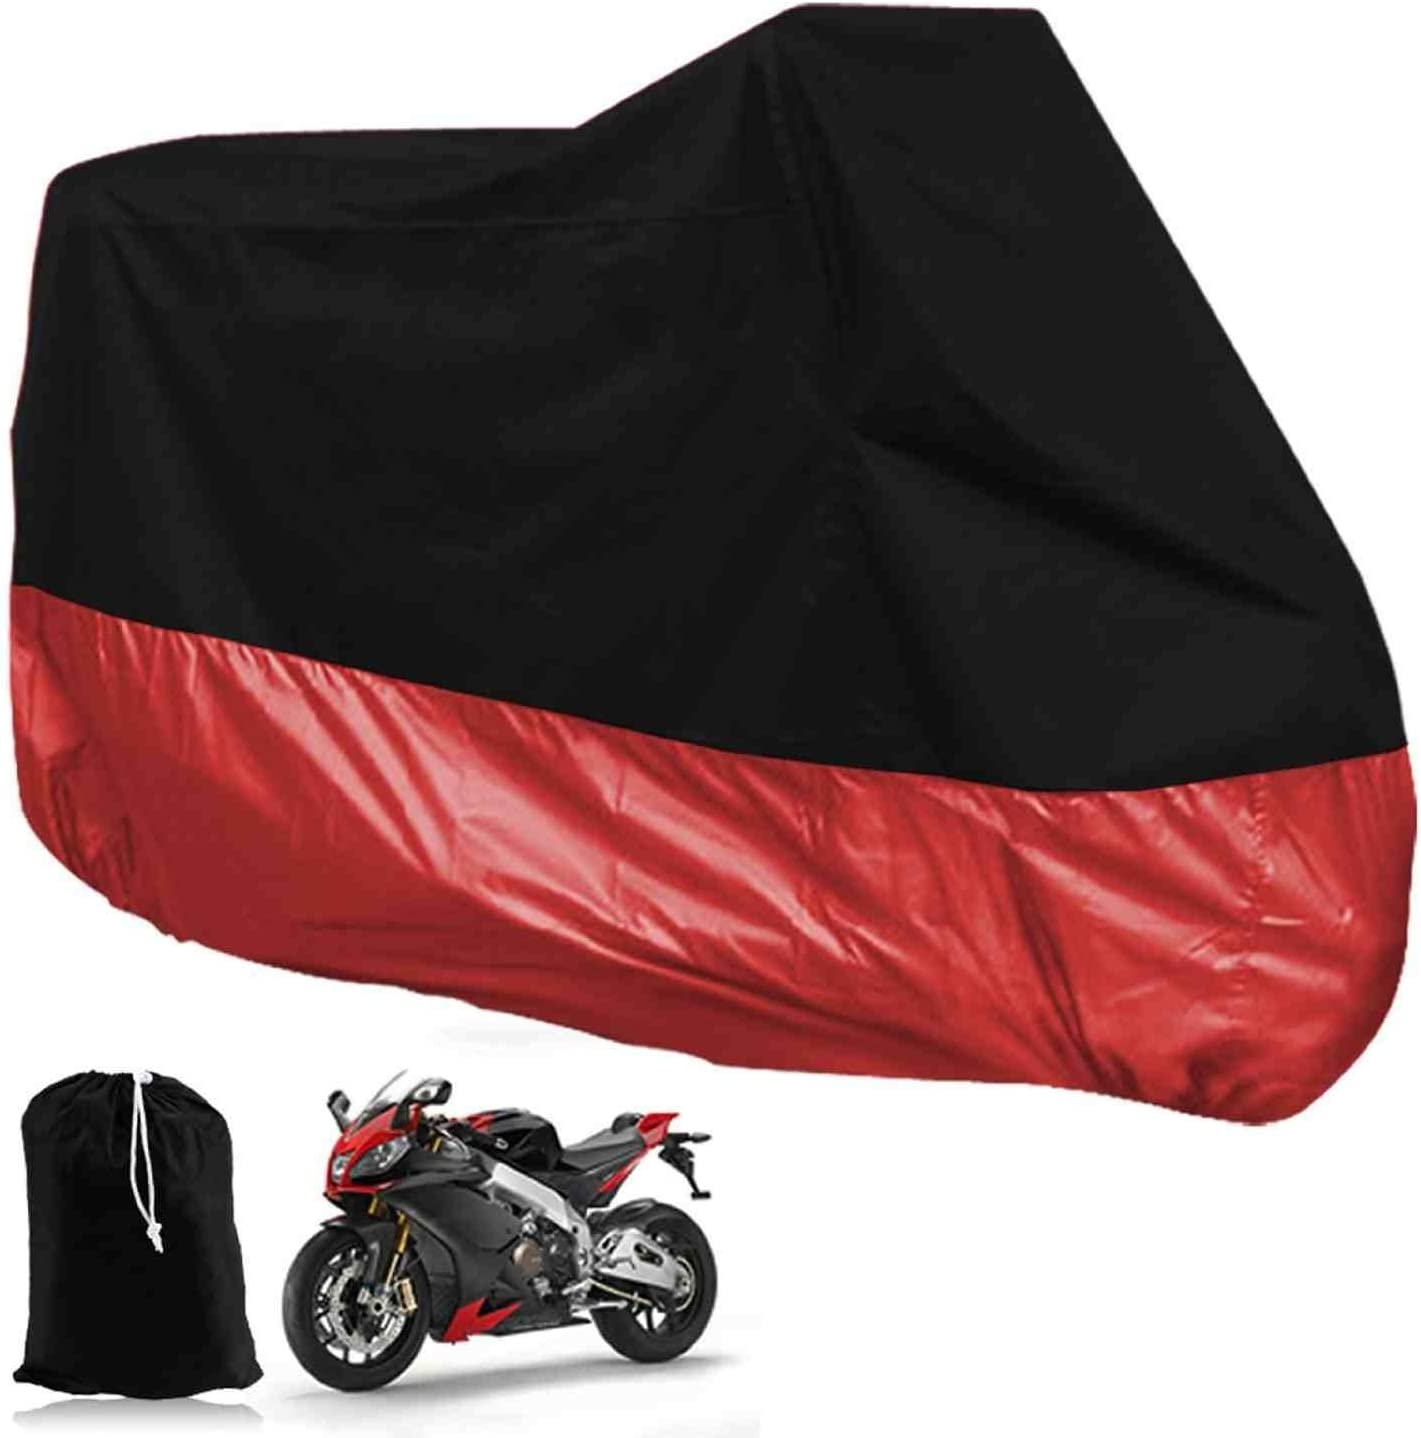 DeliaWinterfel XXL Motorcycle Foldable Waterproof Tarpaulin Cover For Garage Outdoors Red and Black With Pocket 265 x 105 x 125cm